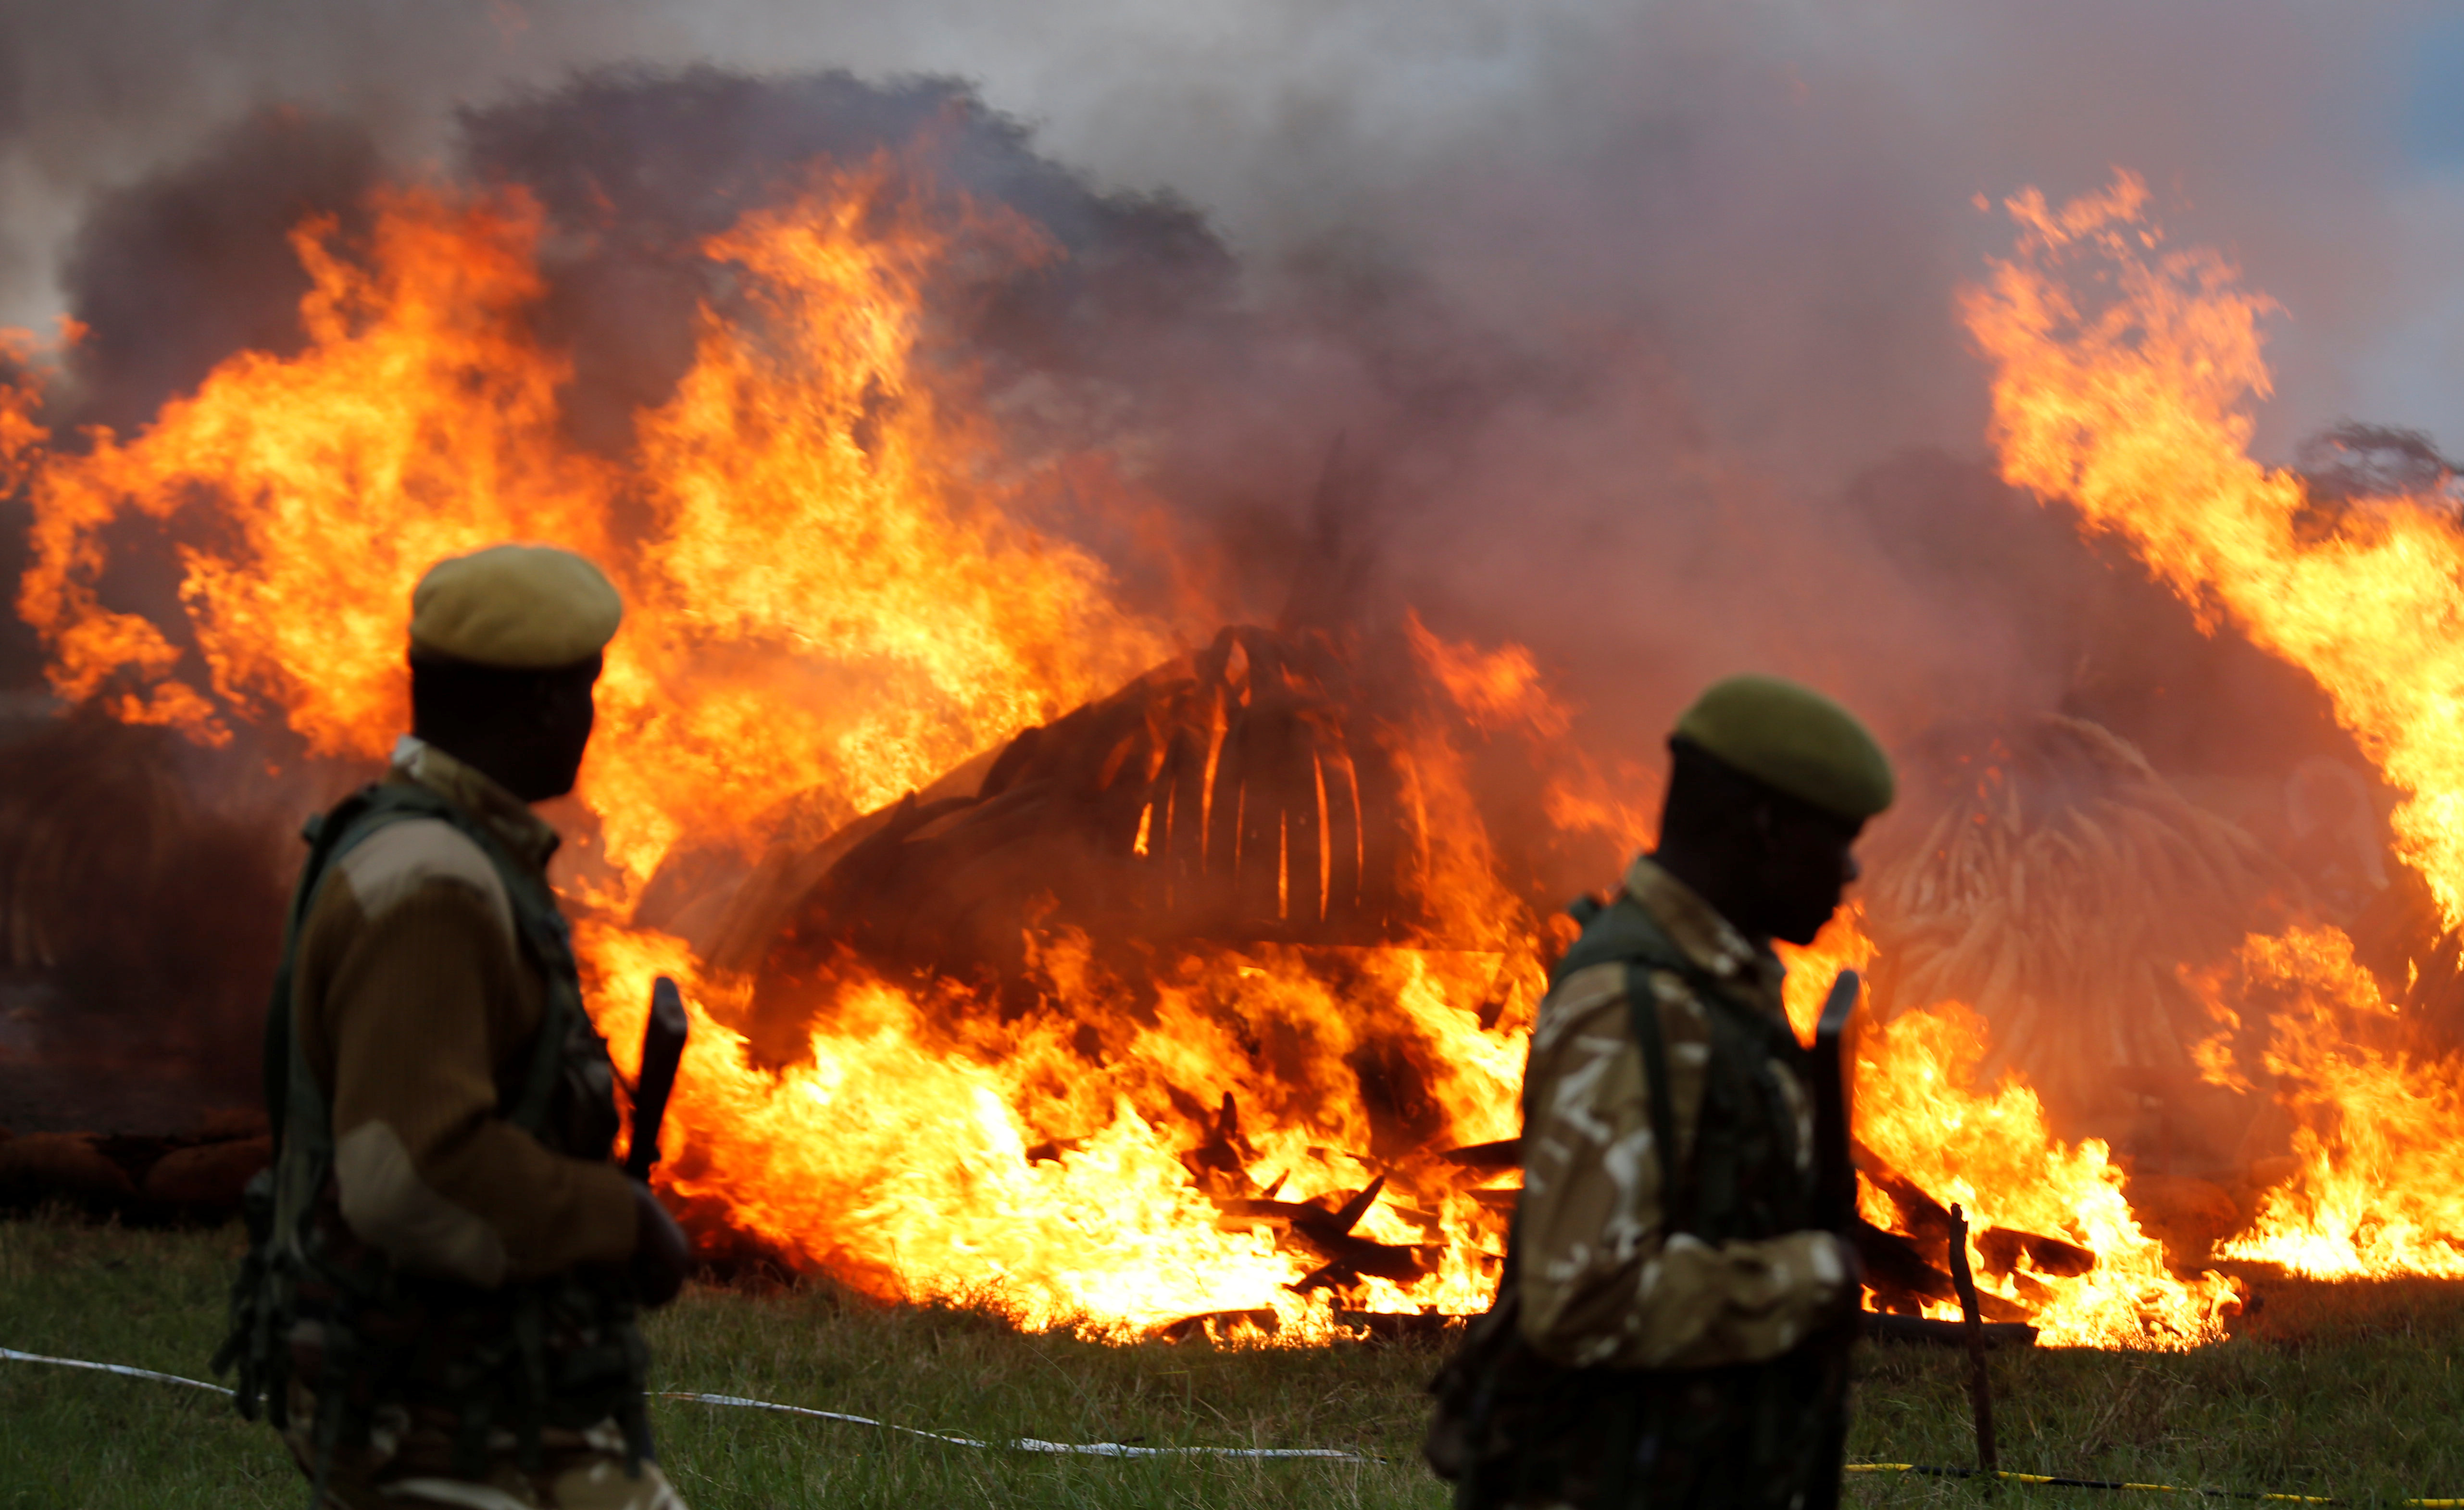 Kenya Wildlife Services rangers patrol as they guard the burning of an estimated 105 tonnes of Elephant tusks confiscated ivory from smugglers and poachers at the Nairobi National Park near Nairobi, Kenya, April 30, 2016. REUTERS/Thomas Mukoya - RTX2C956